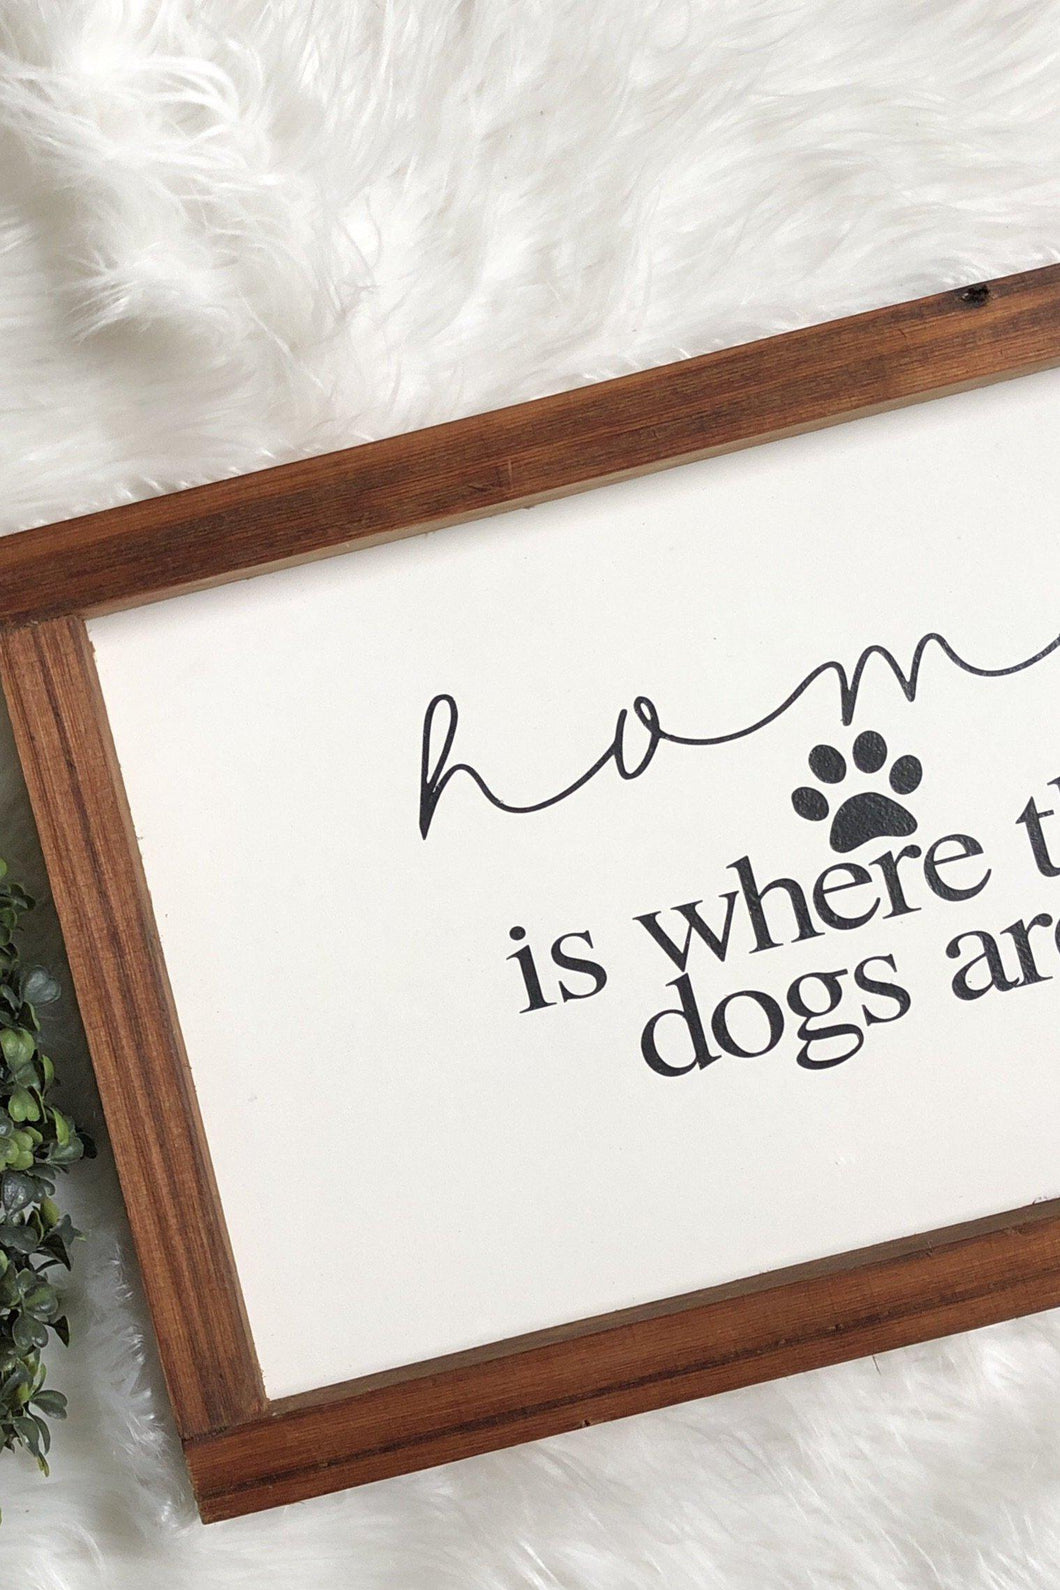 Homes is where the dogs are